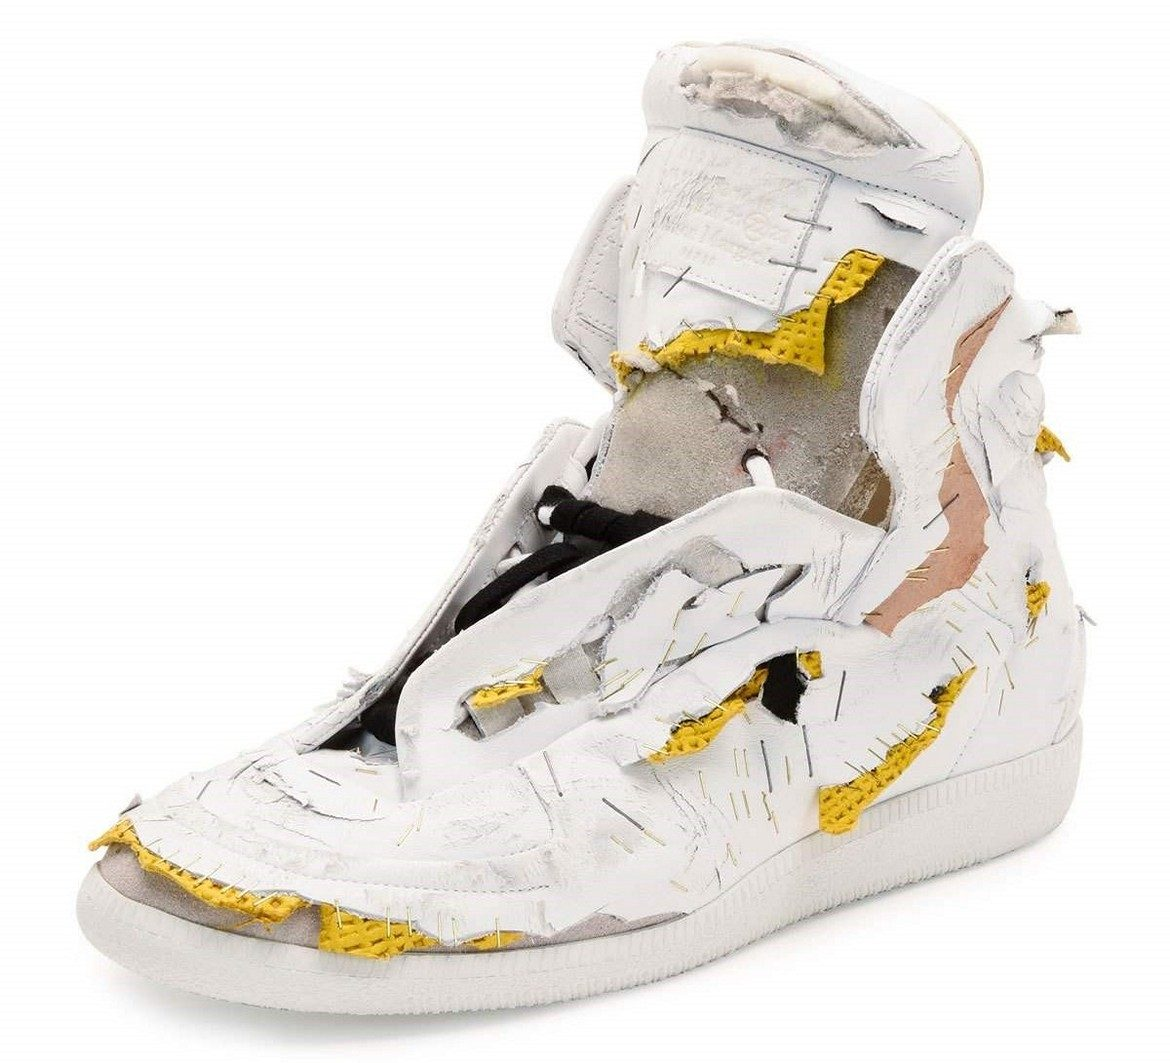 Maison Margiela Future Destroyed Sneakers